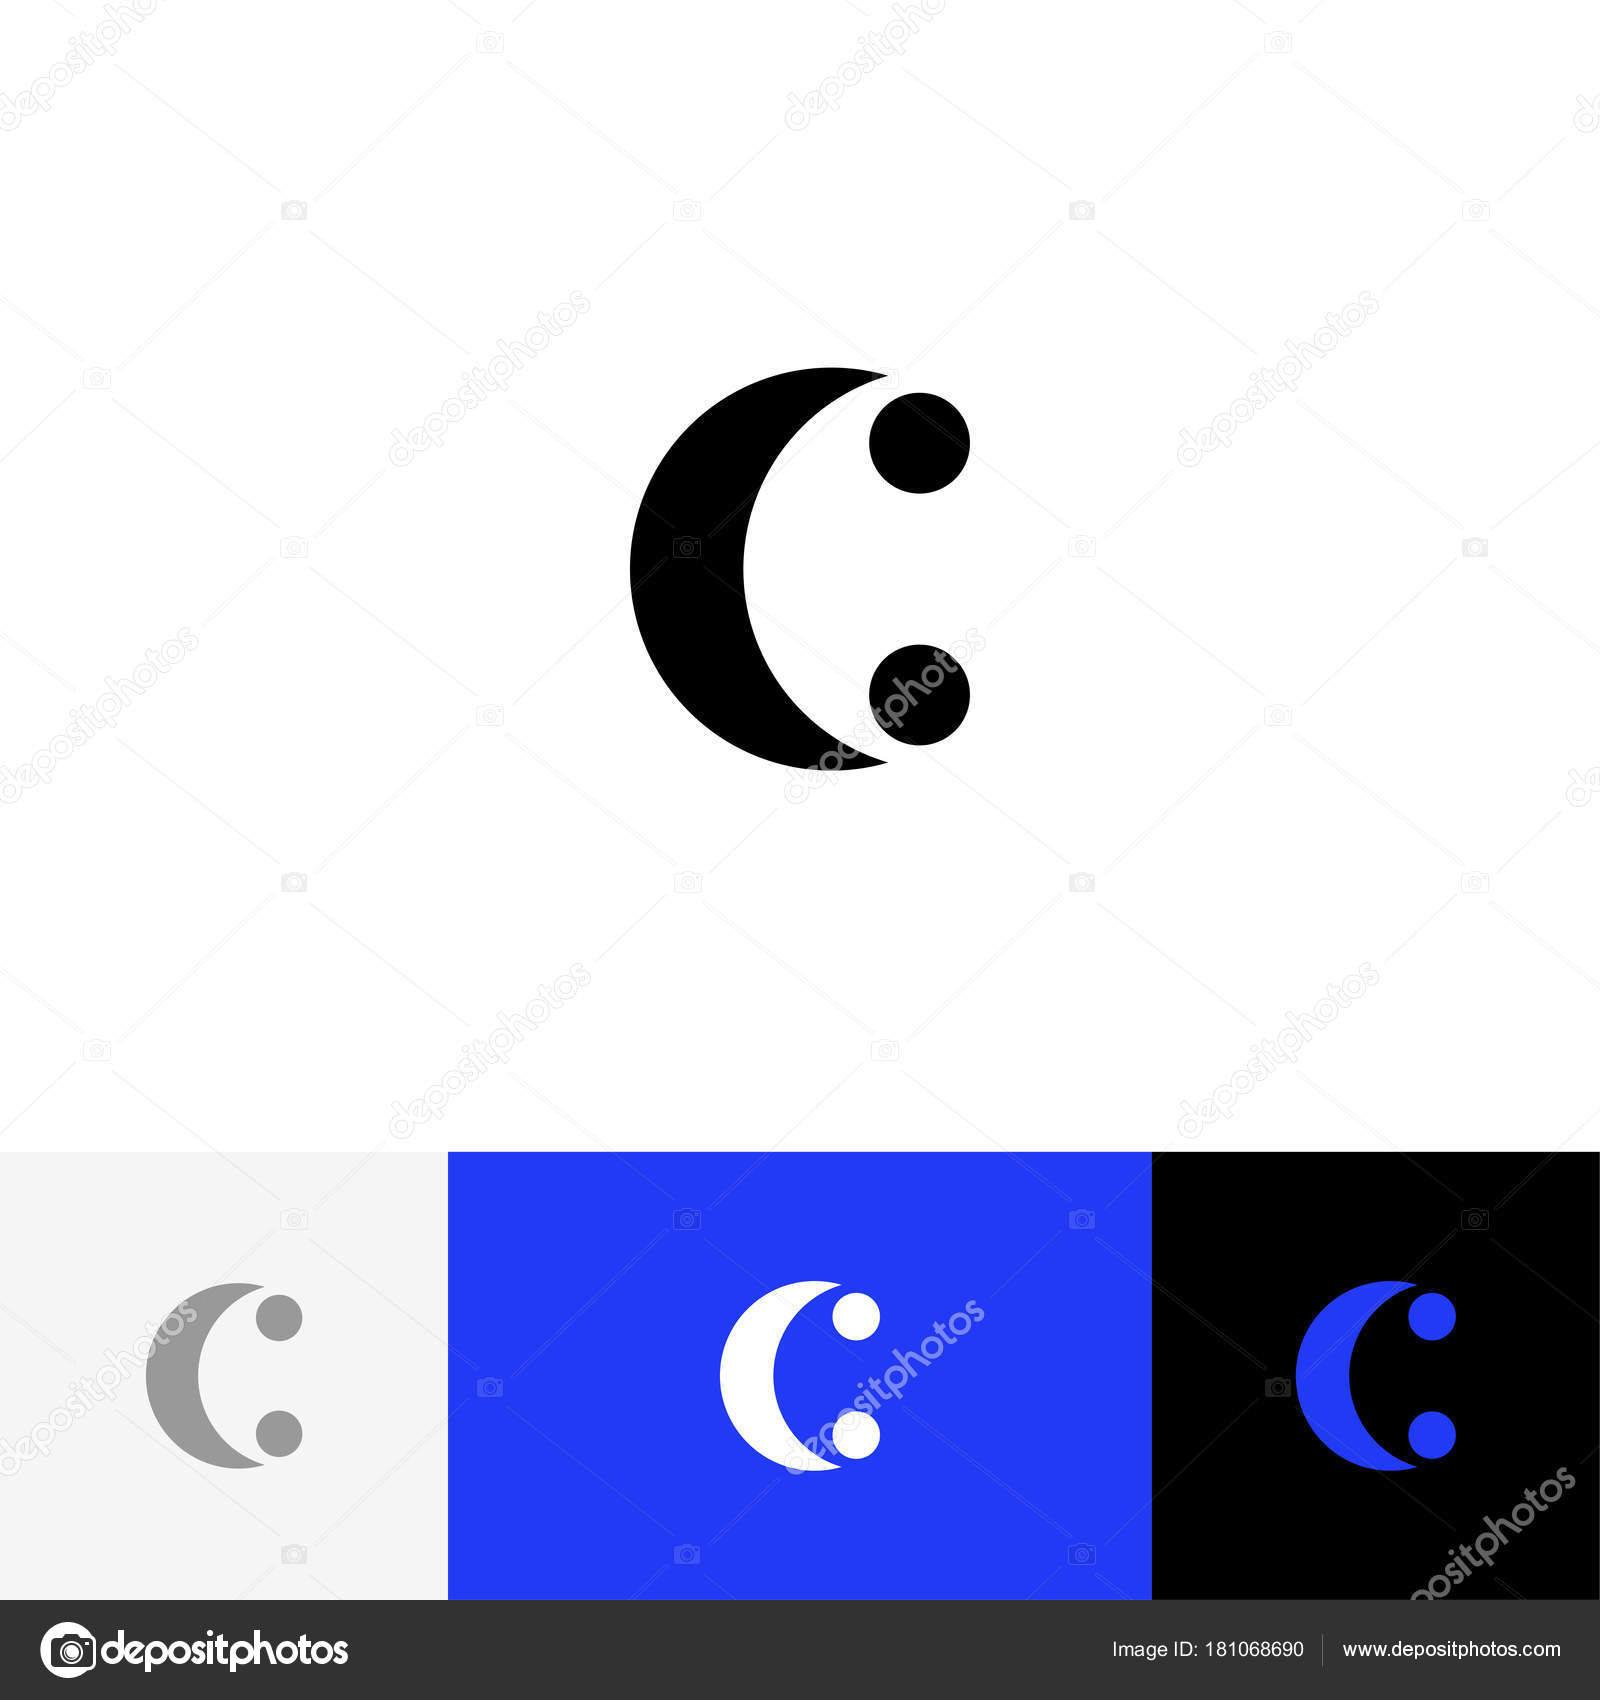 C with two dots vector minimalism logo icon symbol sign from c with two dots vector minimalism logo icon symbol sign from letters c flat logotype design with blue color for company or brand vector by janis s biocorpaavc